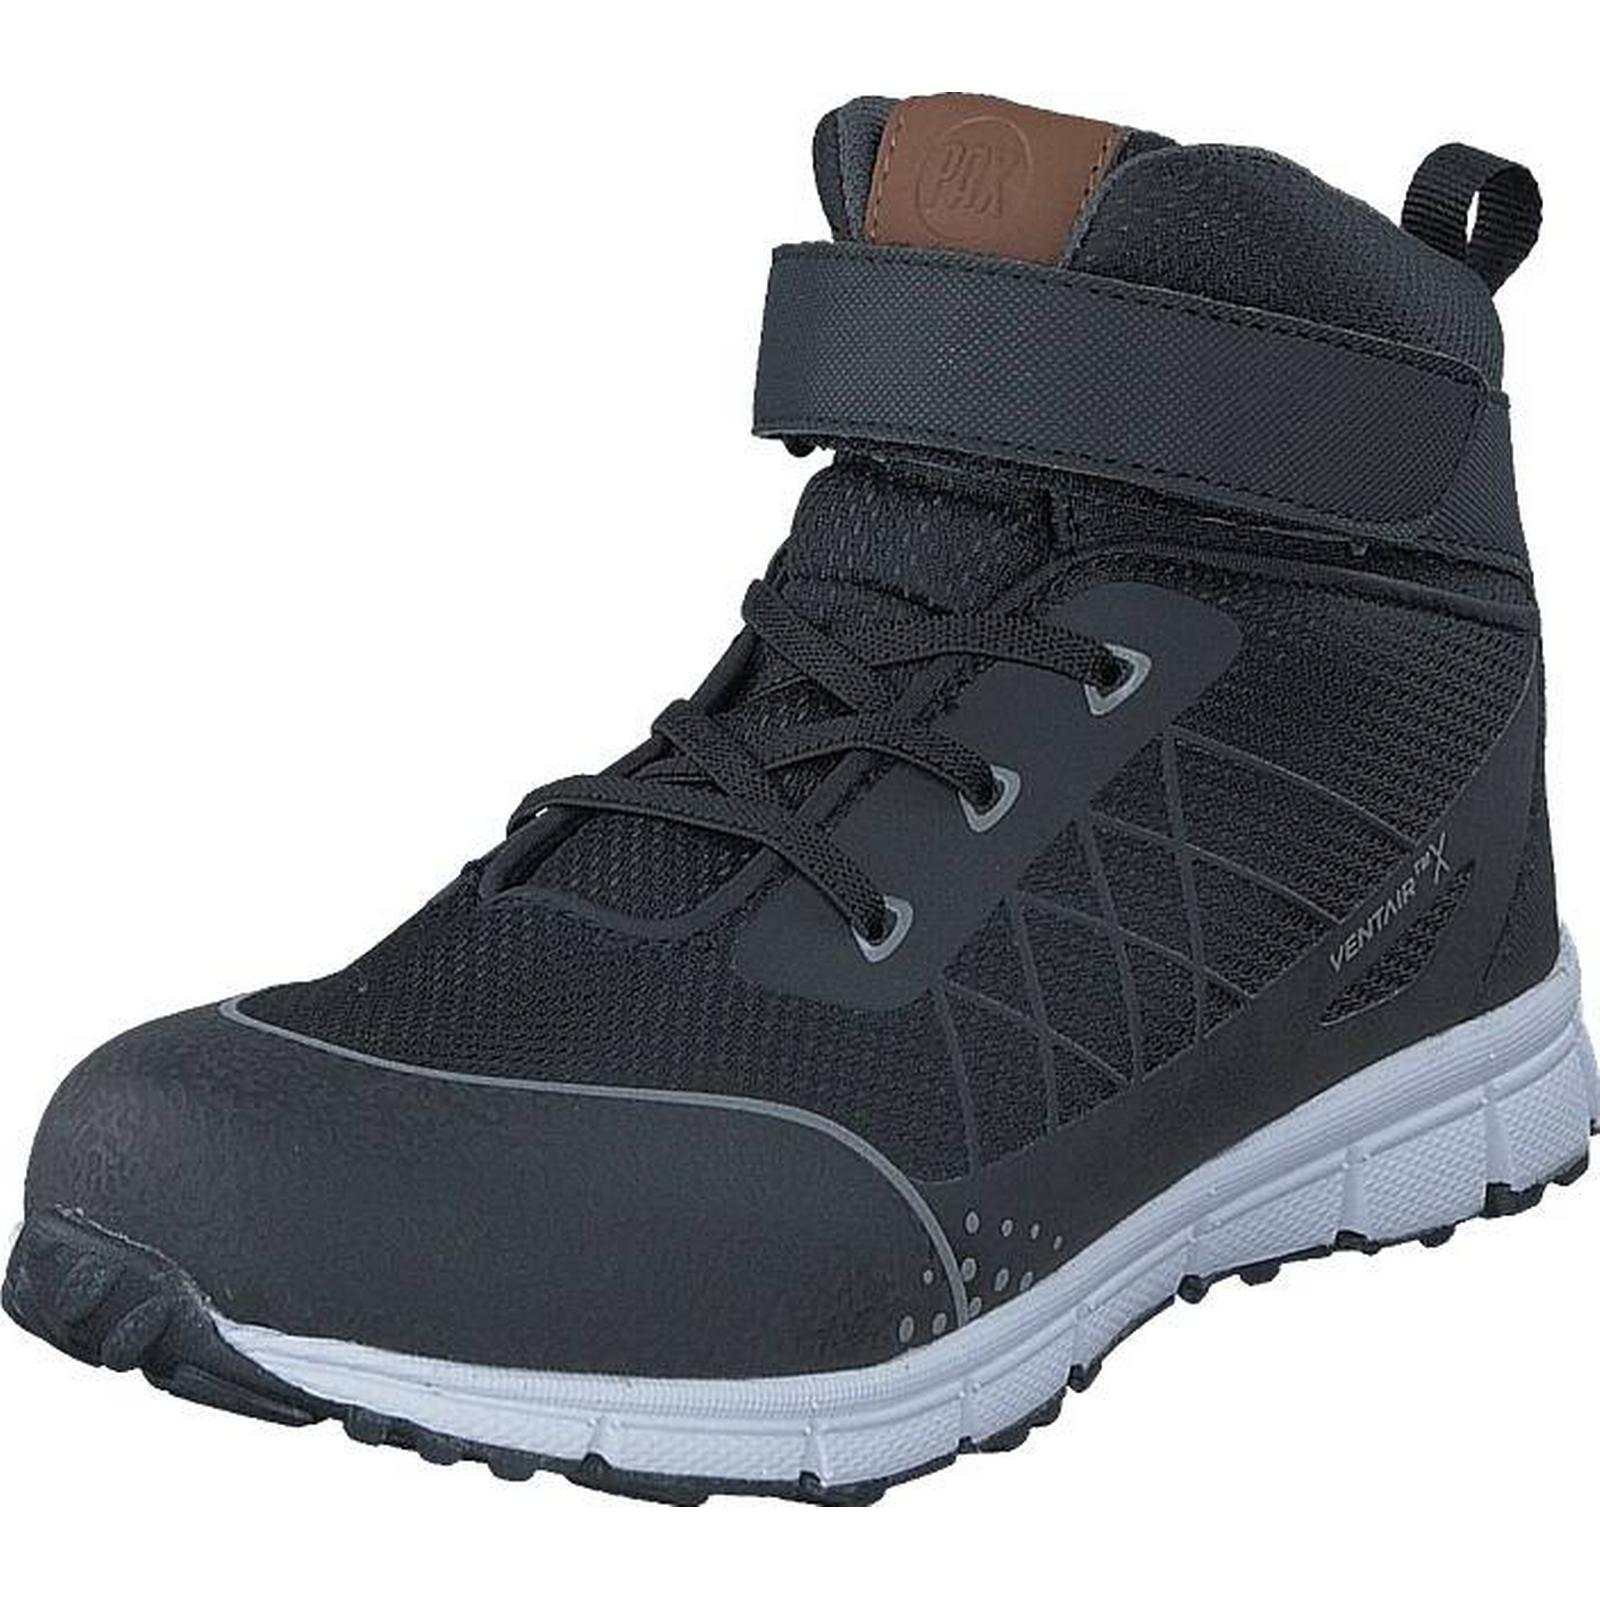 Pax Swish Black, Black, Swish Shoes, Boots & Chelseas, Hiking Boots, Grey, Unisex, 24 fdd719